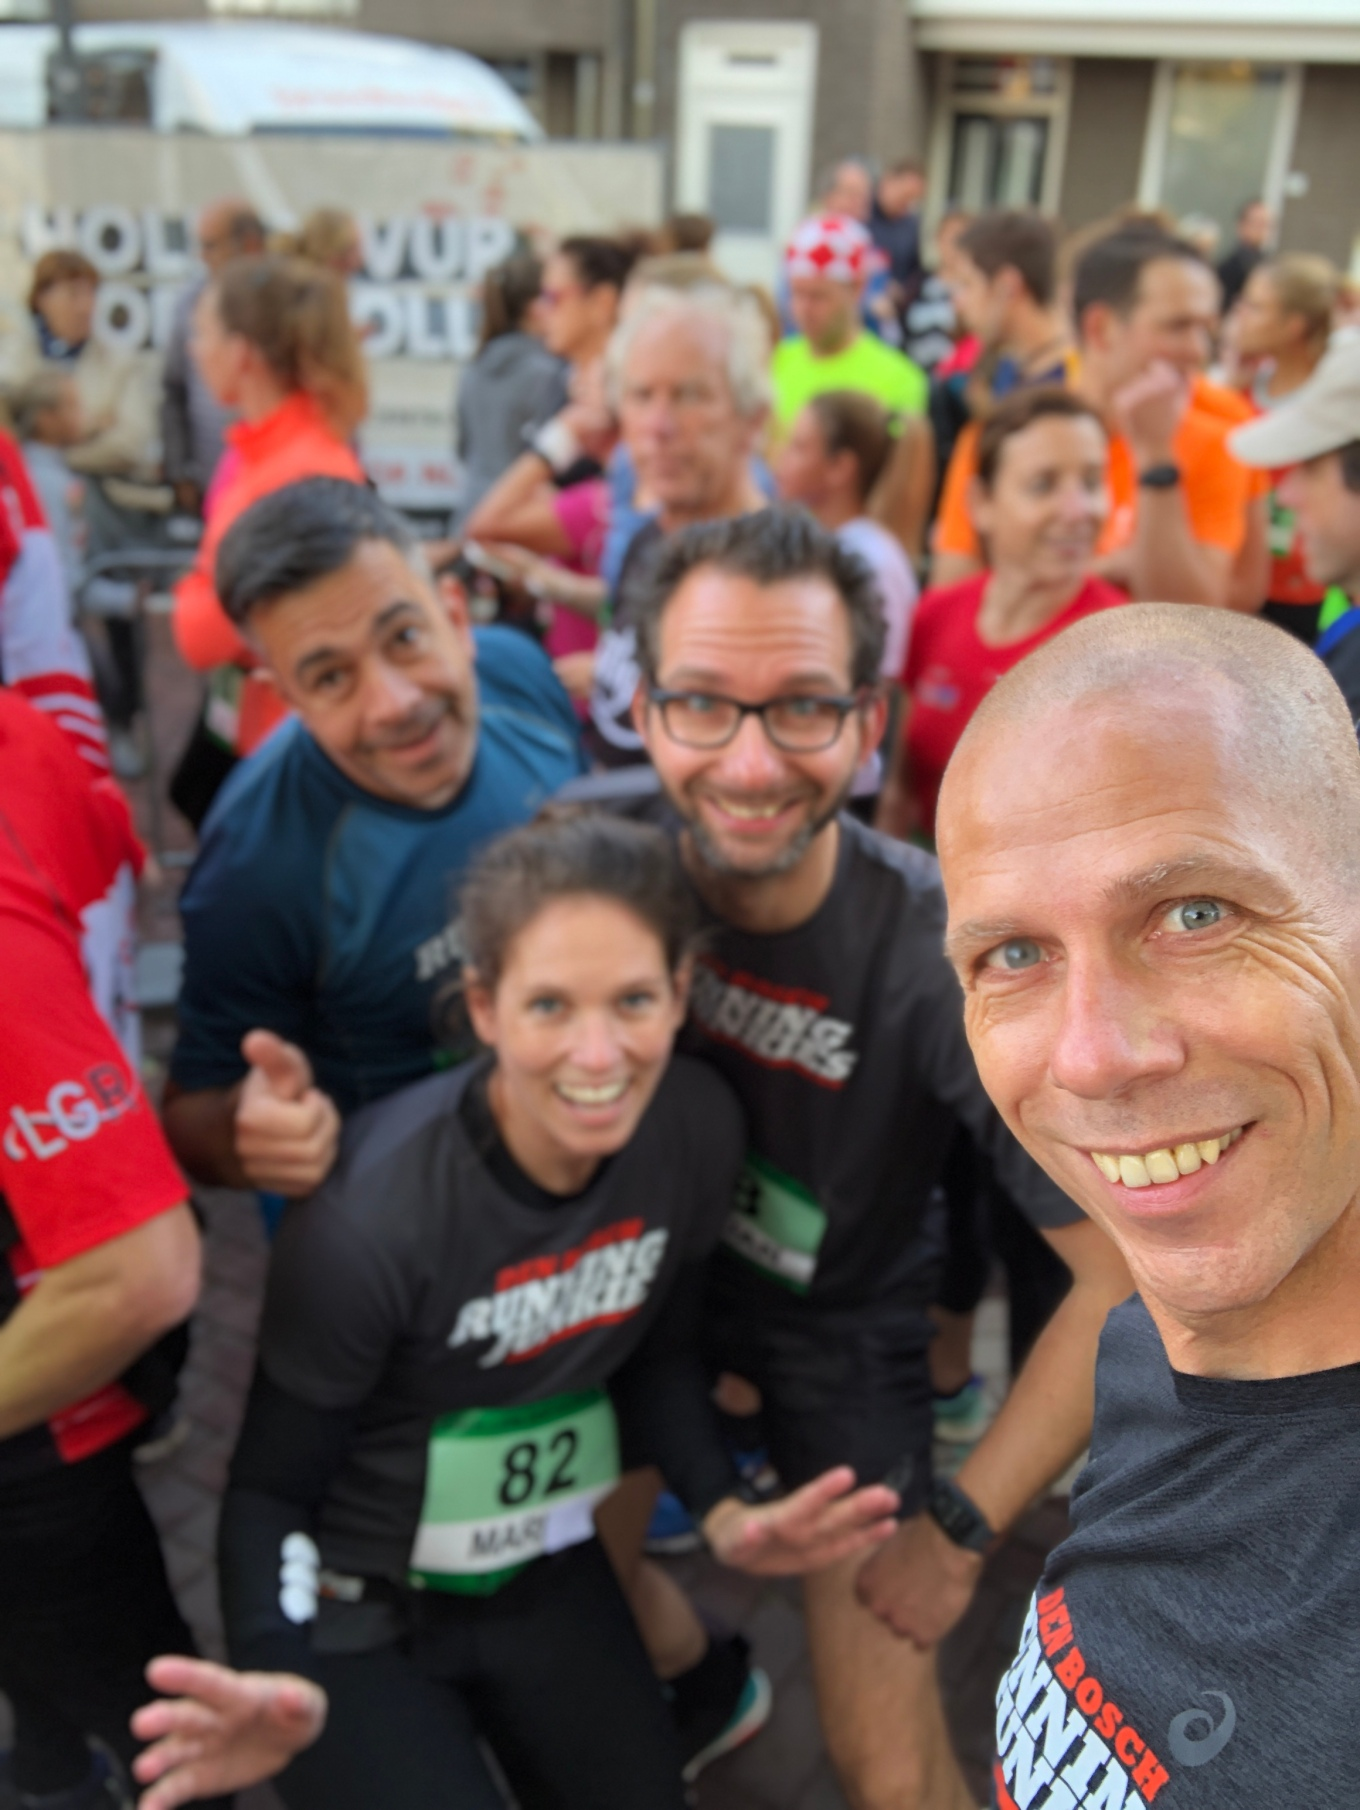 startvak mari krollenloop running junkies